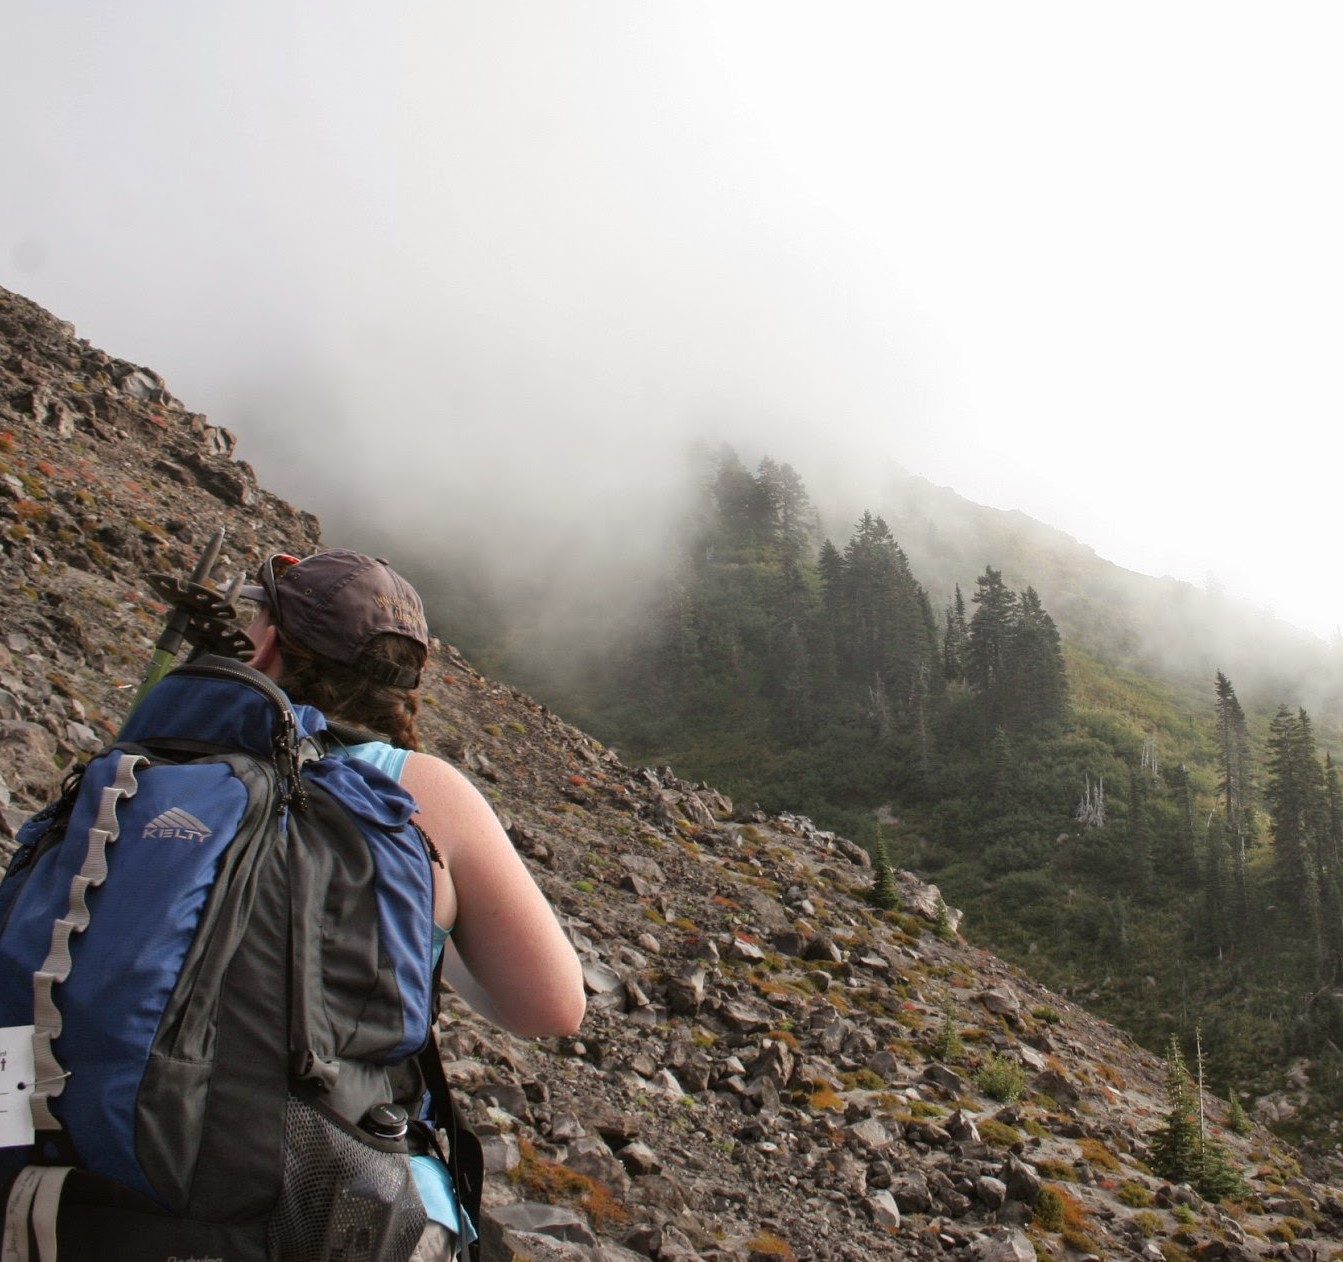 A hiker with a blue backpack looks uphill across a field of rocks with trees in the background and fog